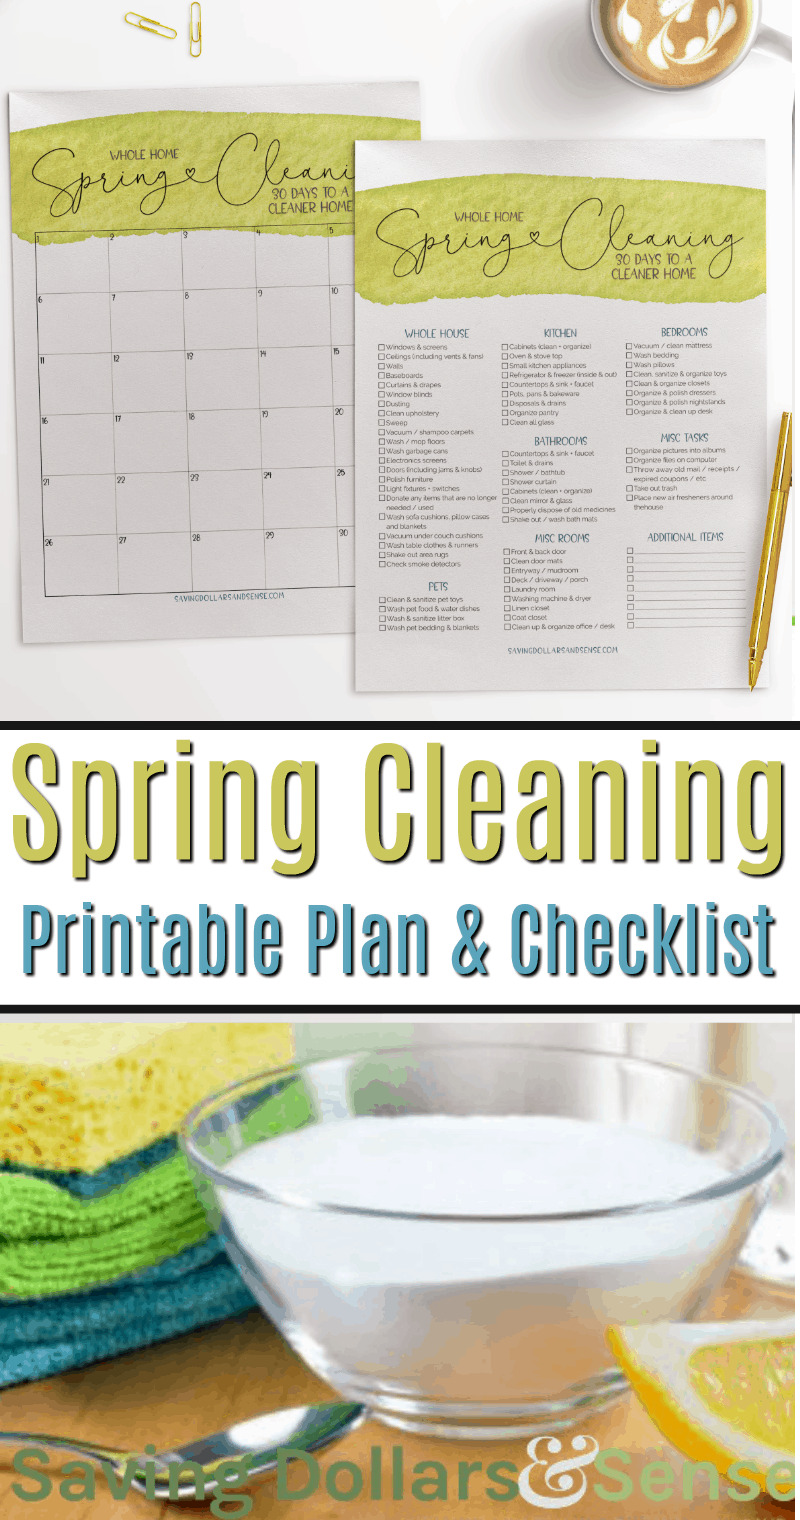 Printable House Cleaning Plan for Spring Cleaning